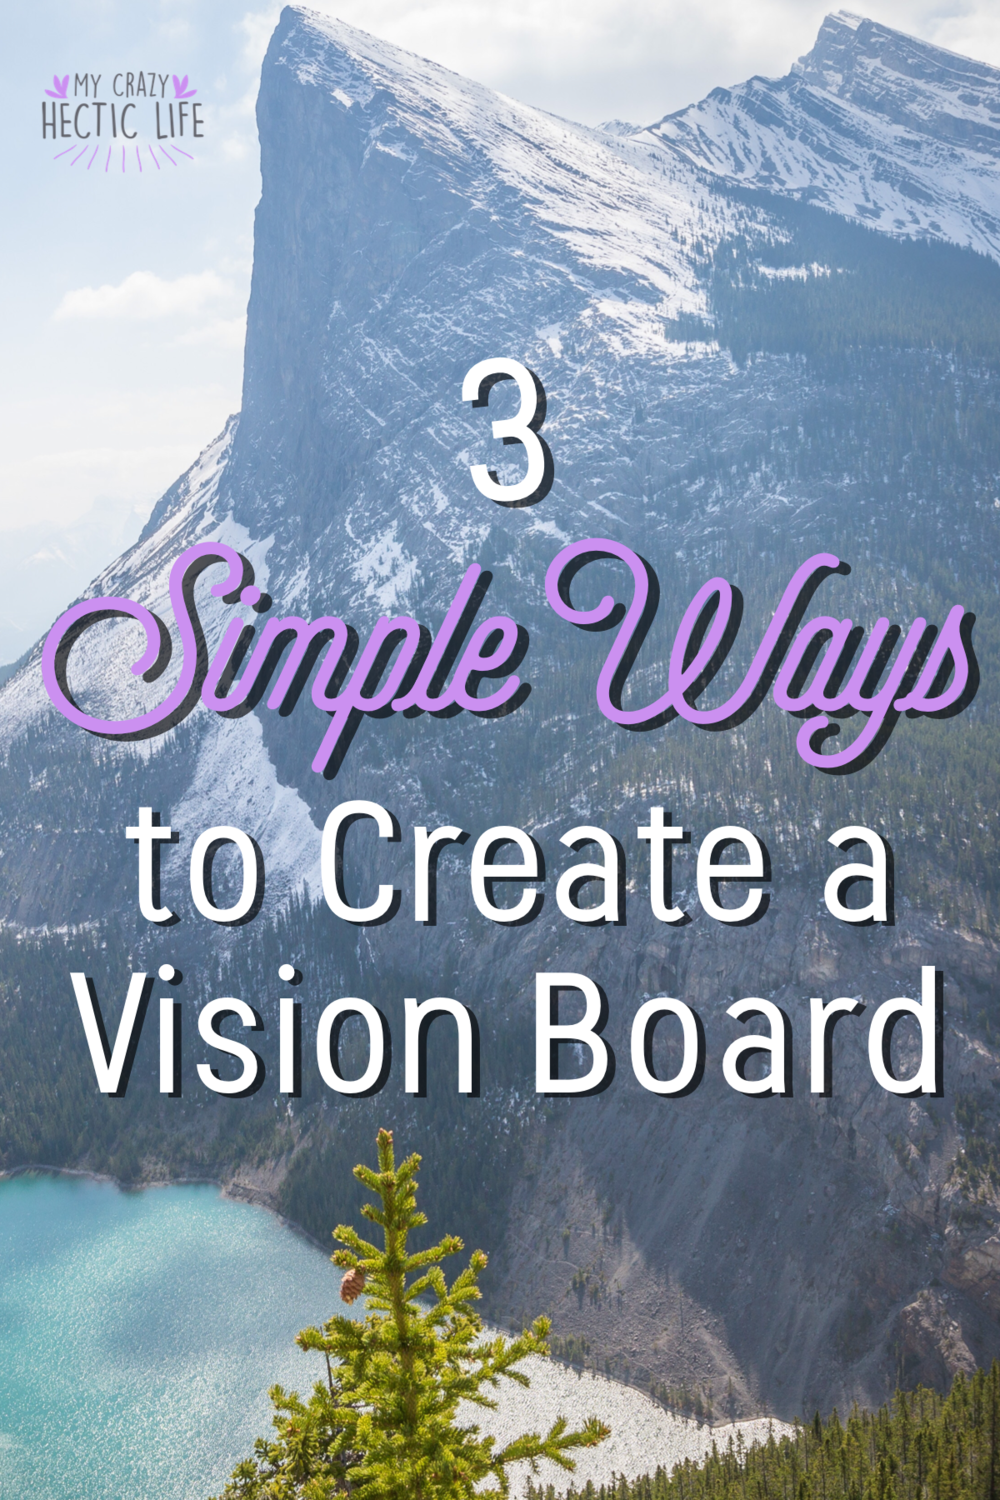 3 Simple Ways to Create a Vision Board